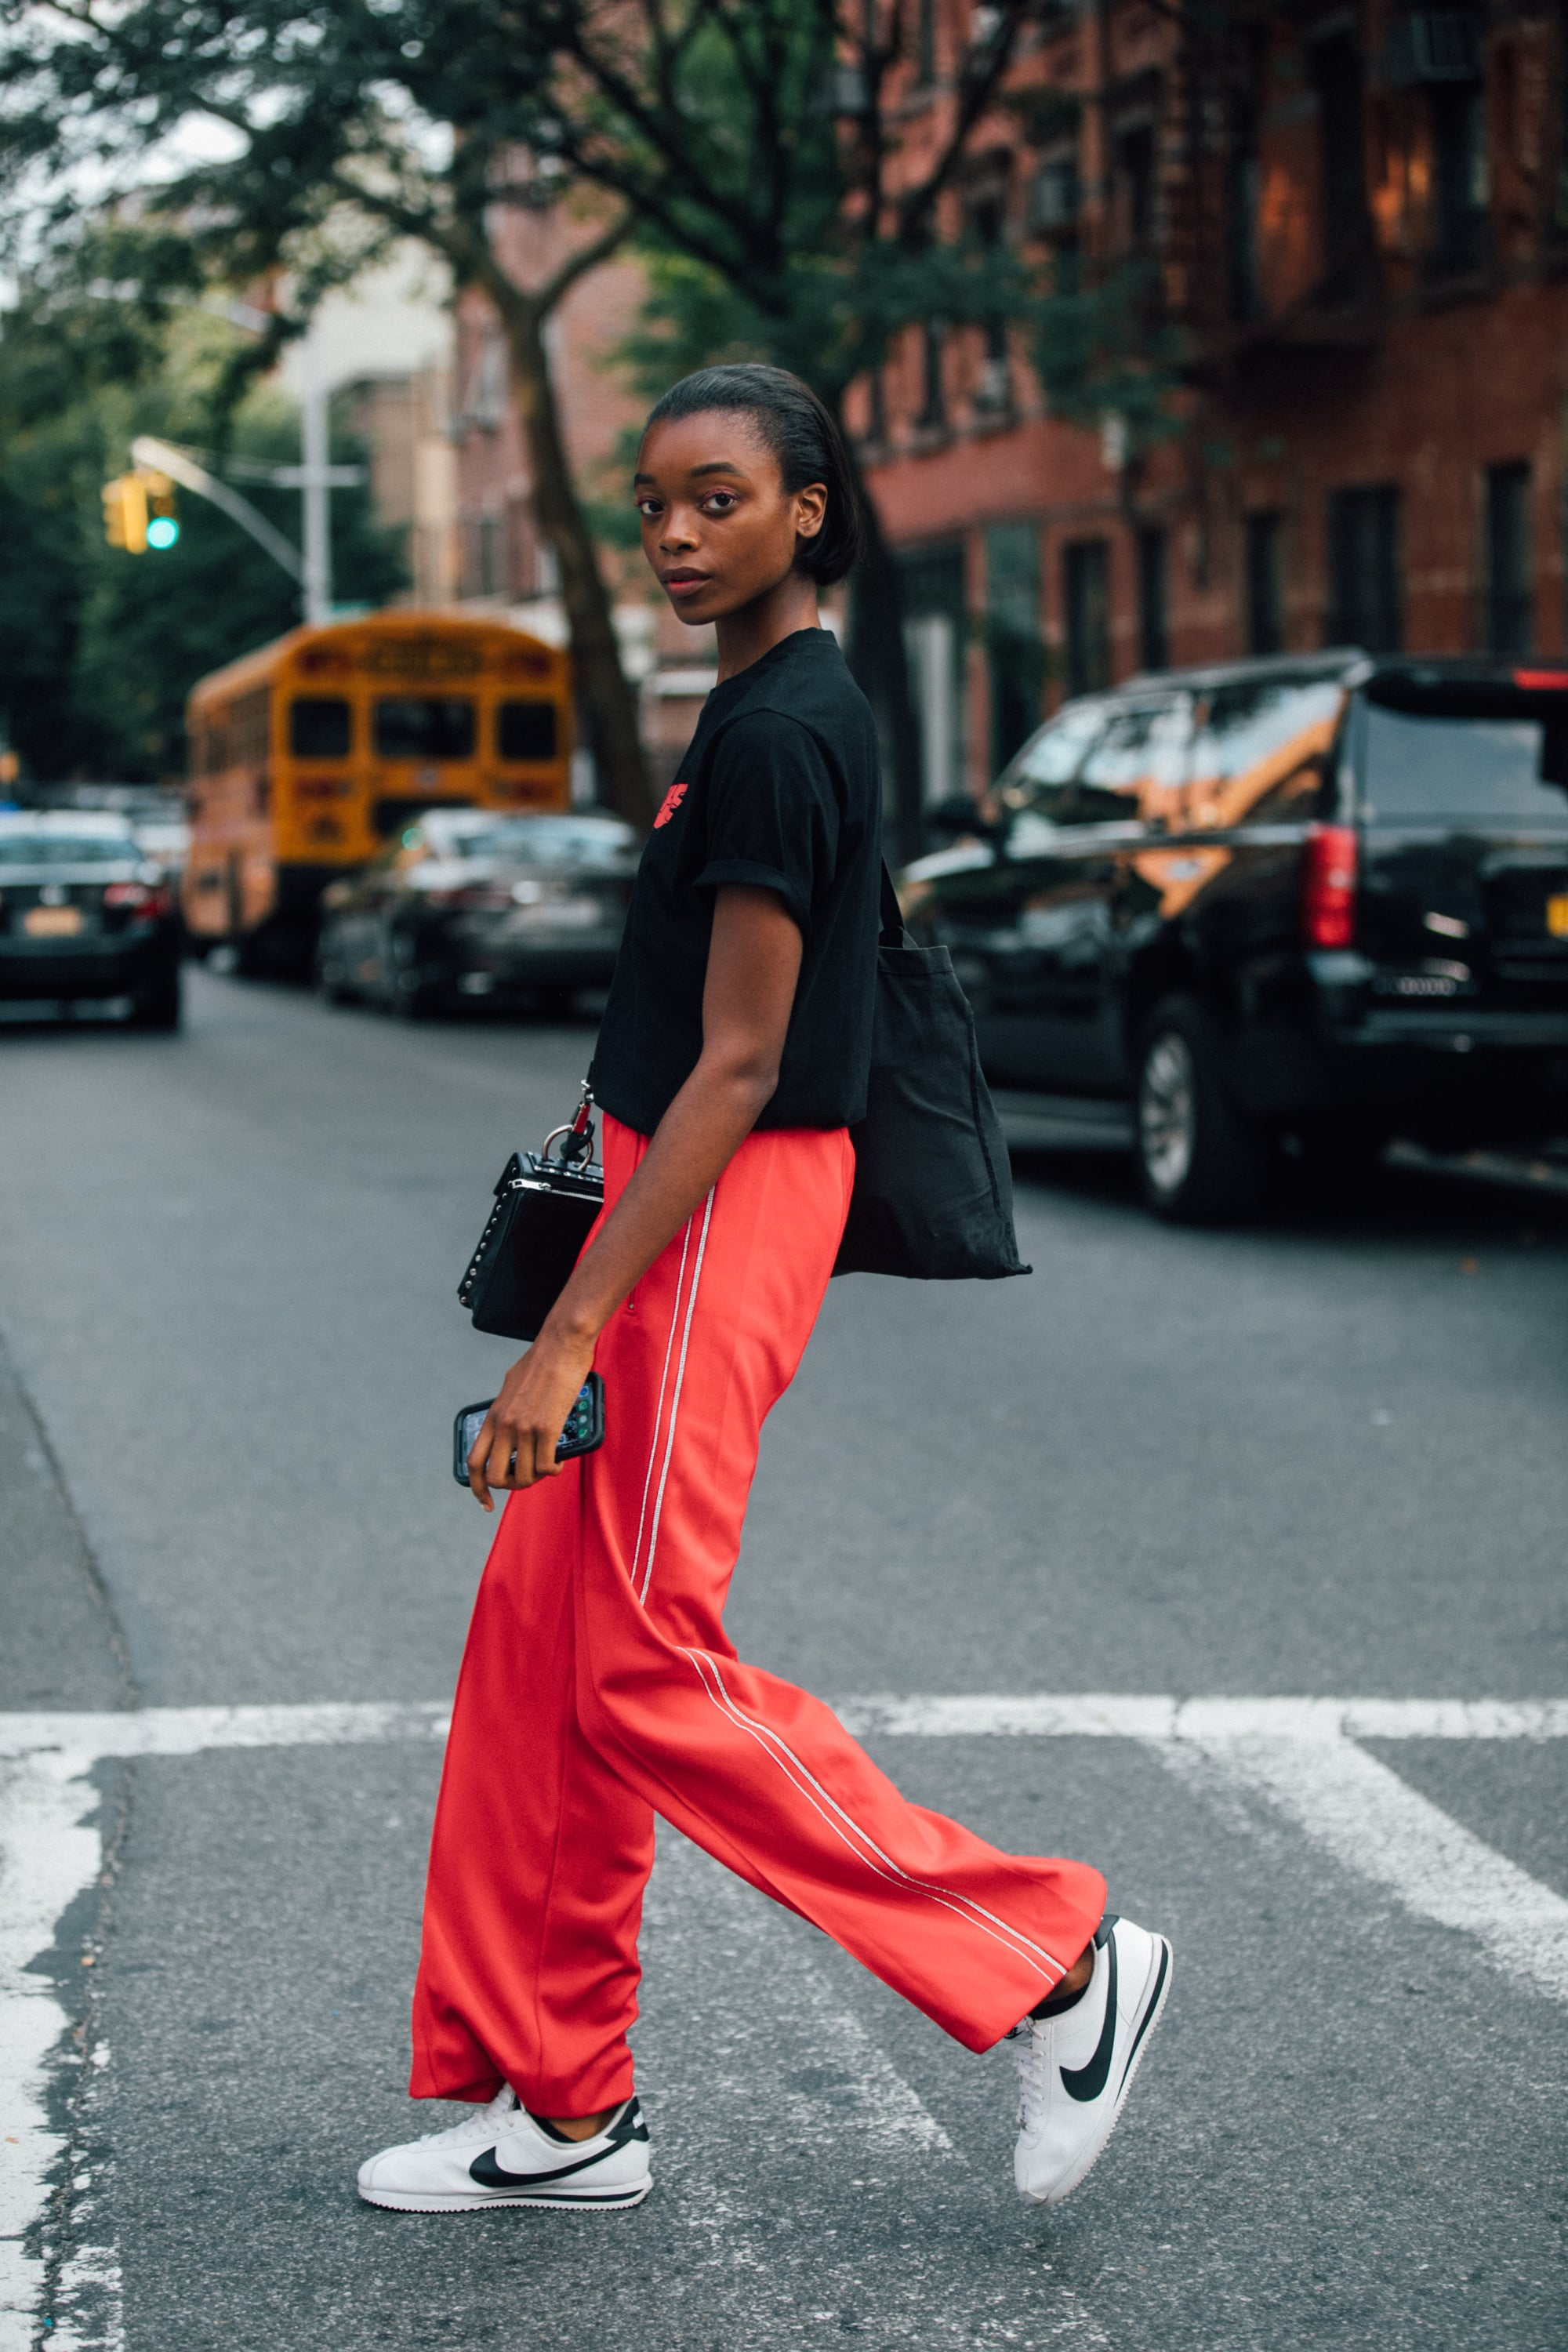 NEW YORK, NY - SEPTEMBER 6: Model Olivia Anakwe wears a black t-shirt, red pants, and white Nike sneakers during New York Fashion Week Spring/Summer 2019 on September 06, 2018 in New York City.